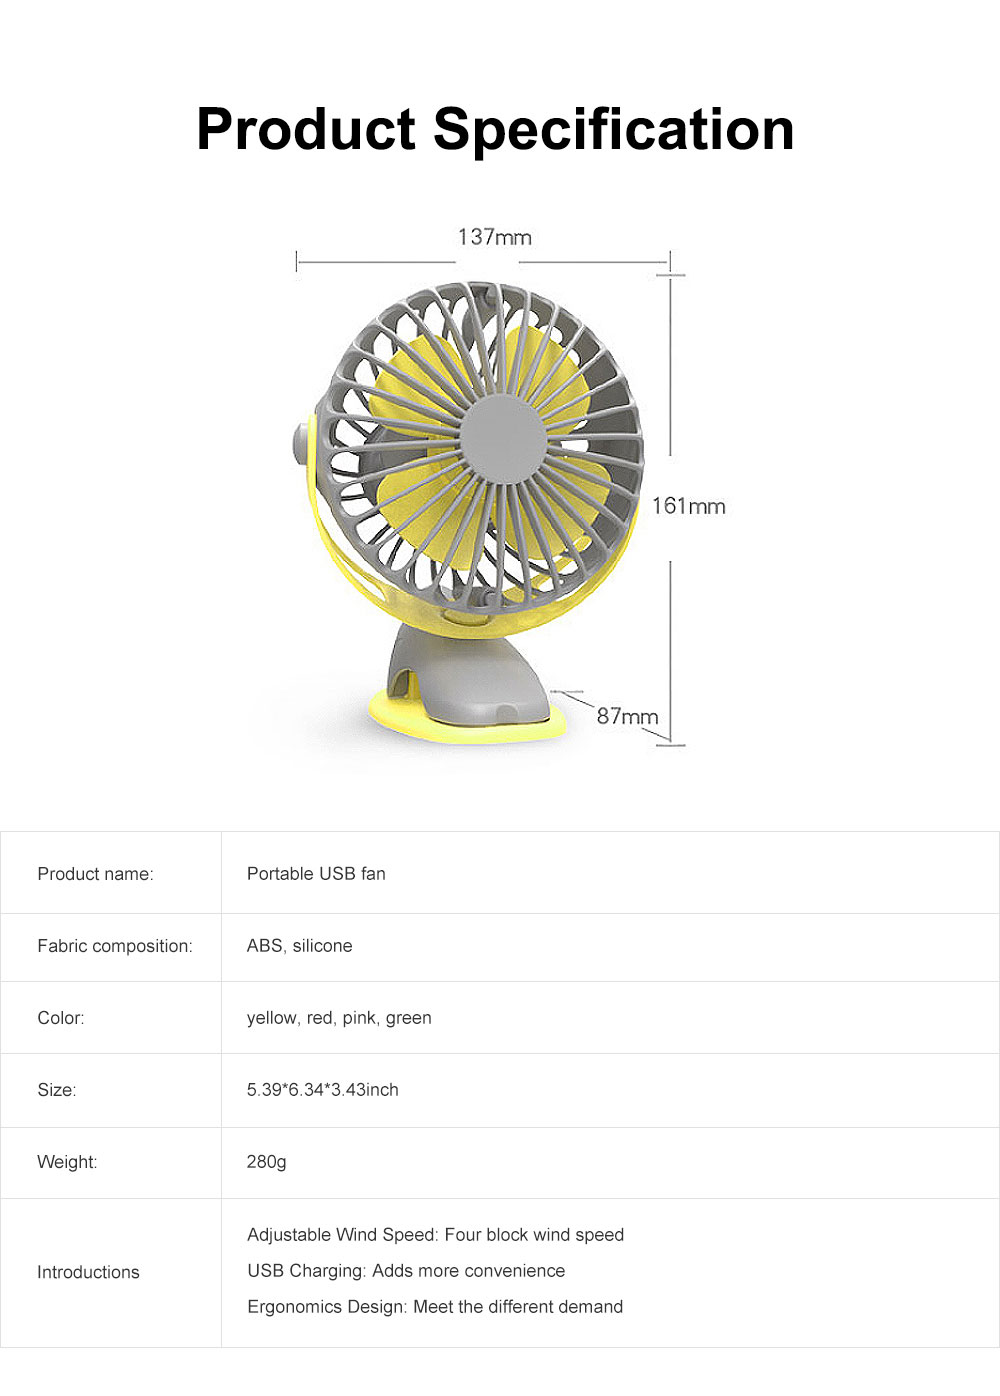 USB Rechargeable Desk Fan, Portable USB Fan with ABS and Silicone Material, Convenient Clip Design 6